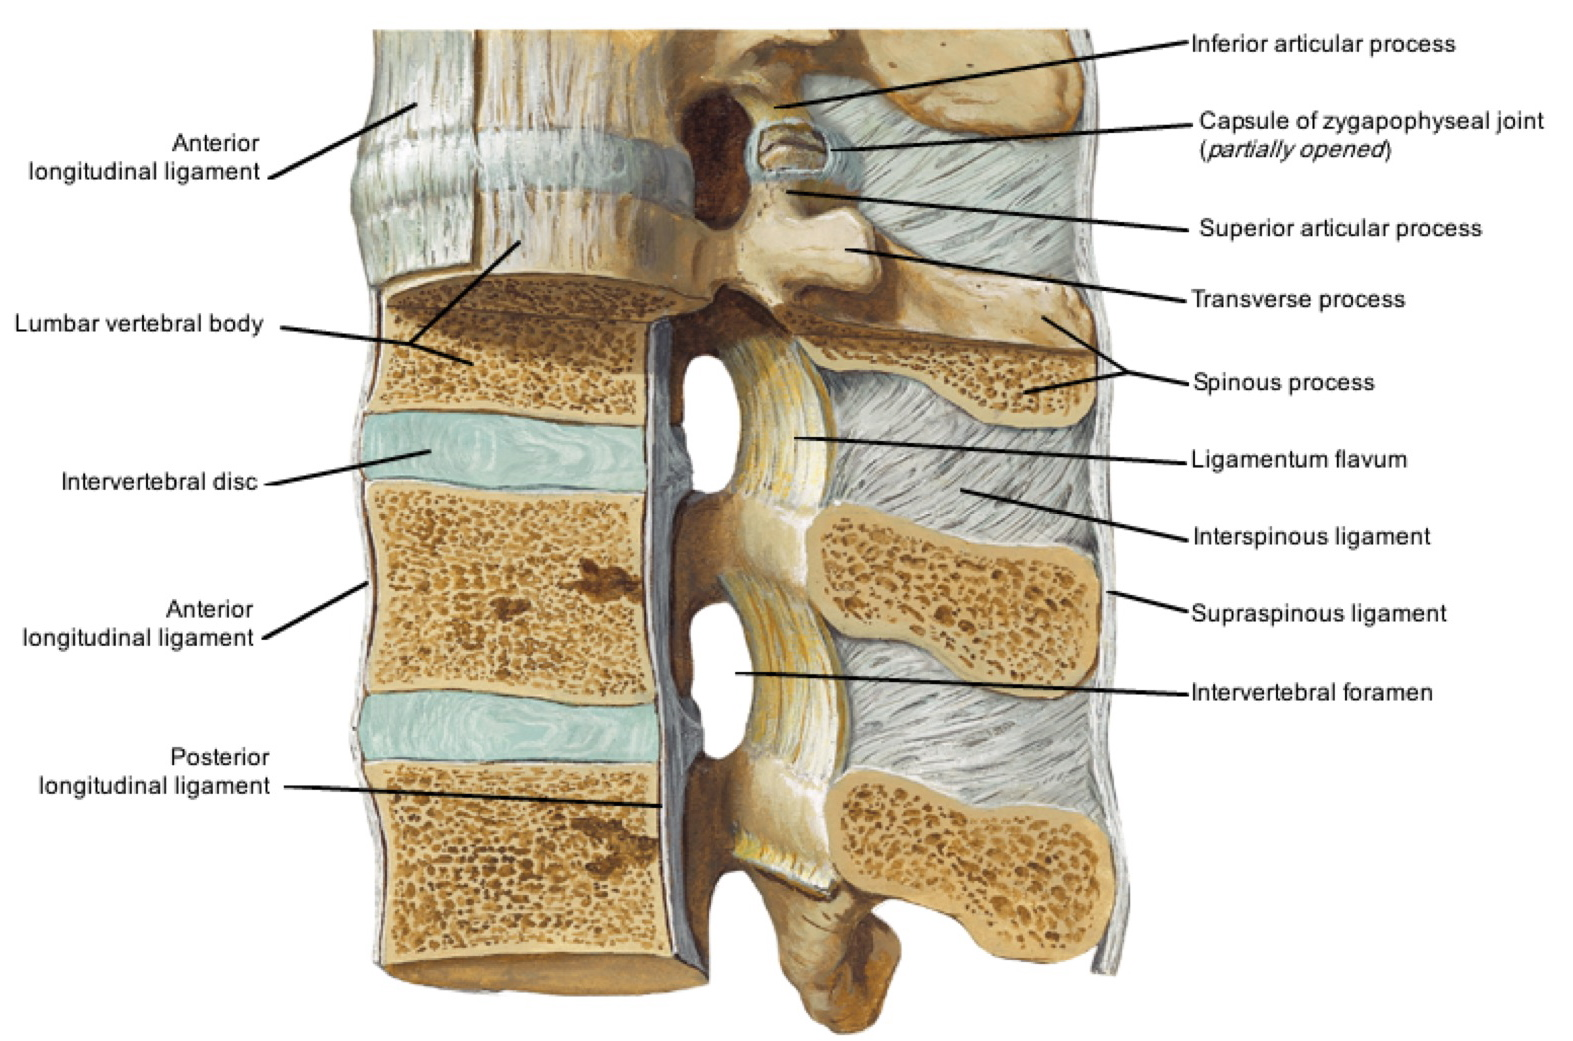 Notes On Anatomy And Physiology The Spinal Ligaments